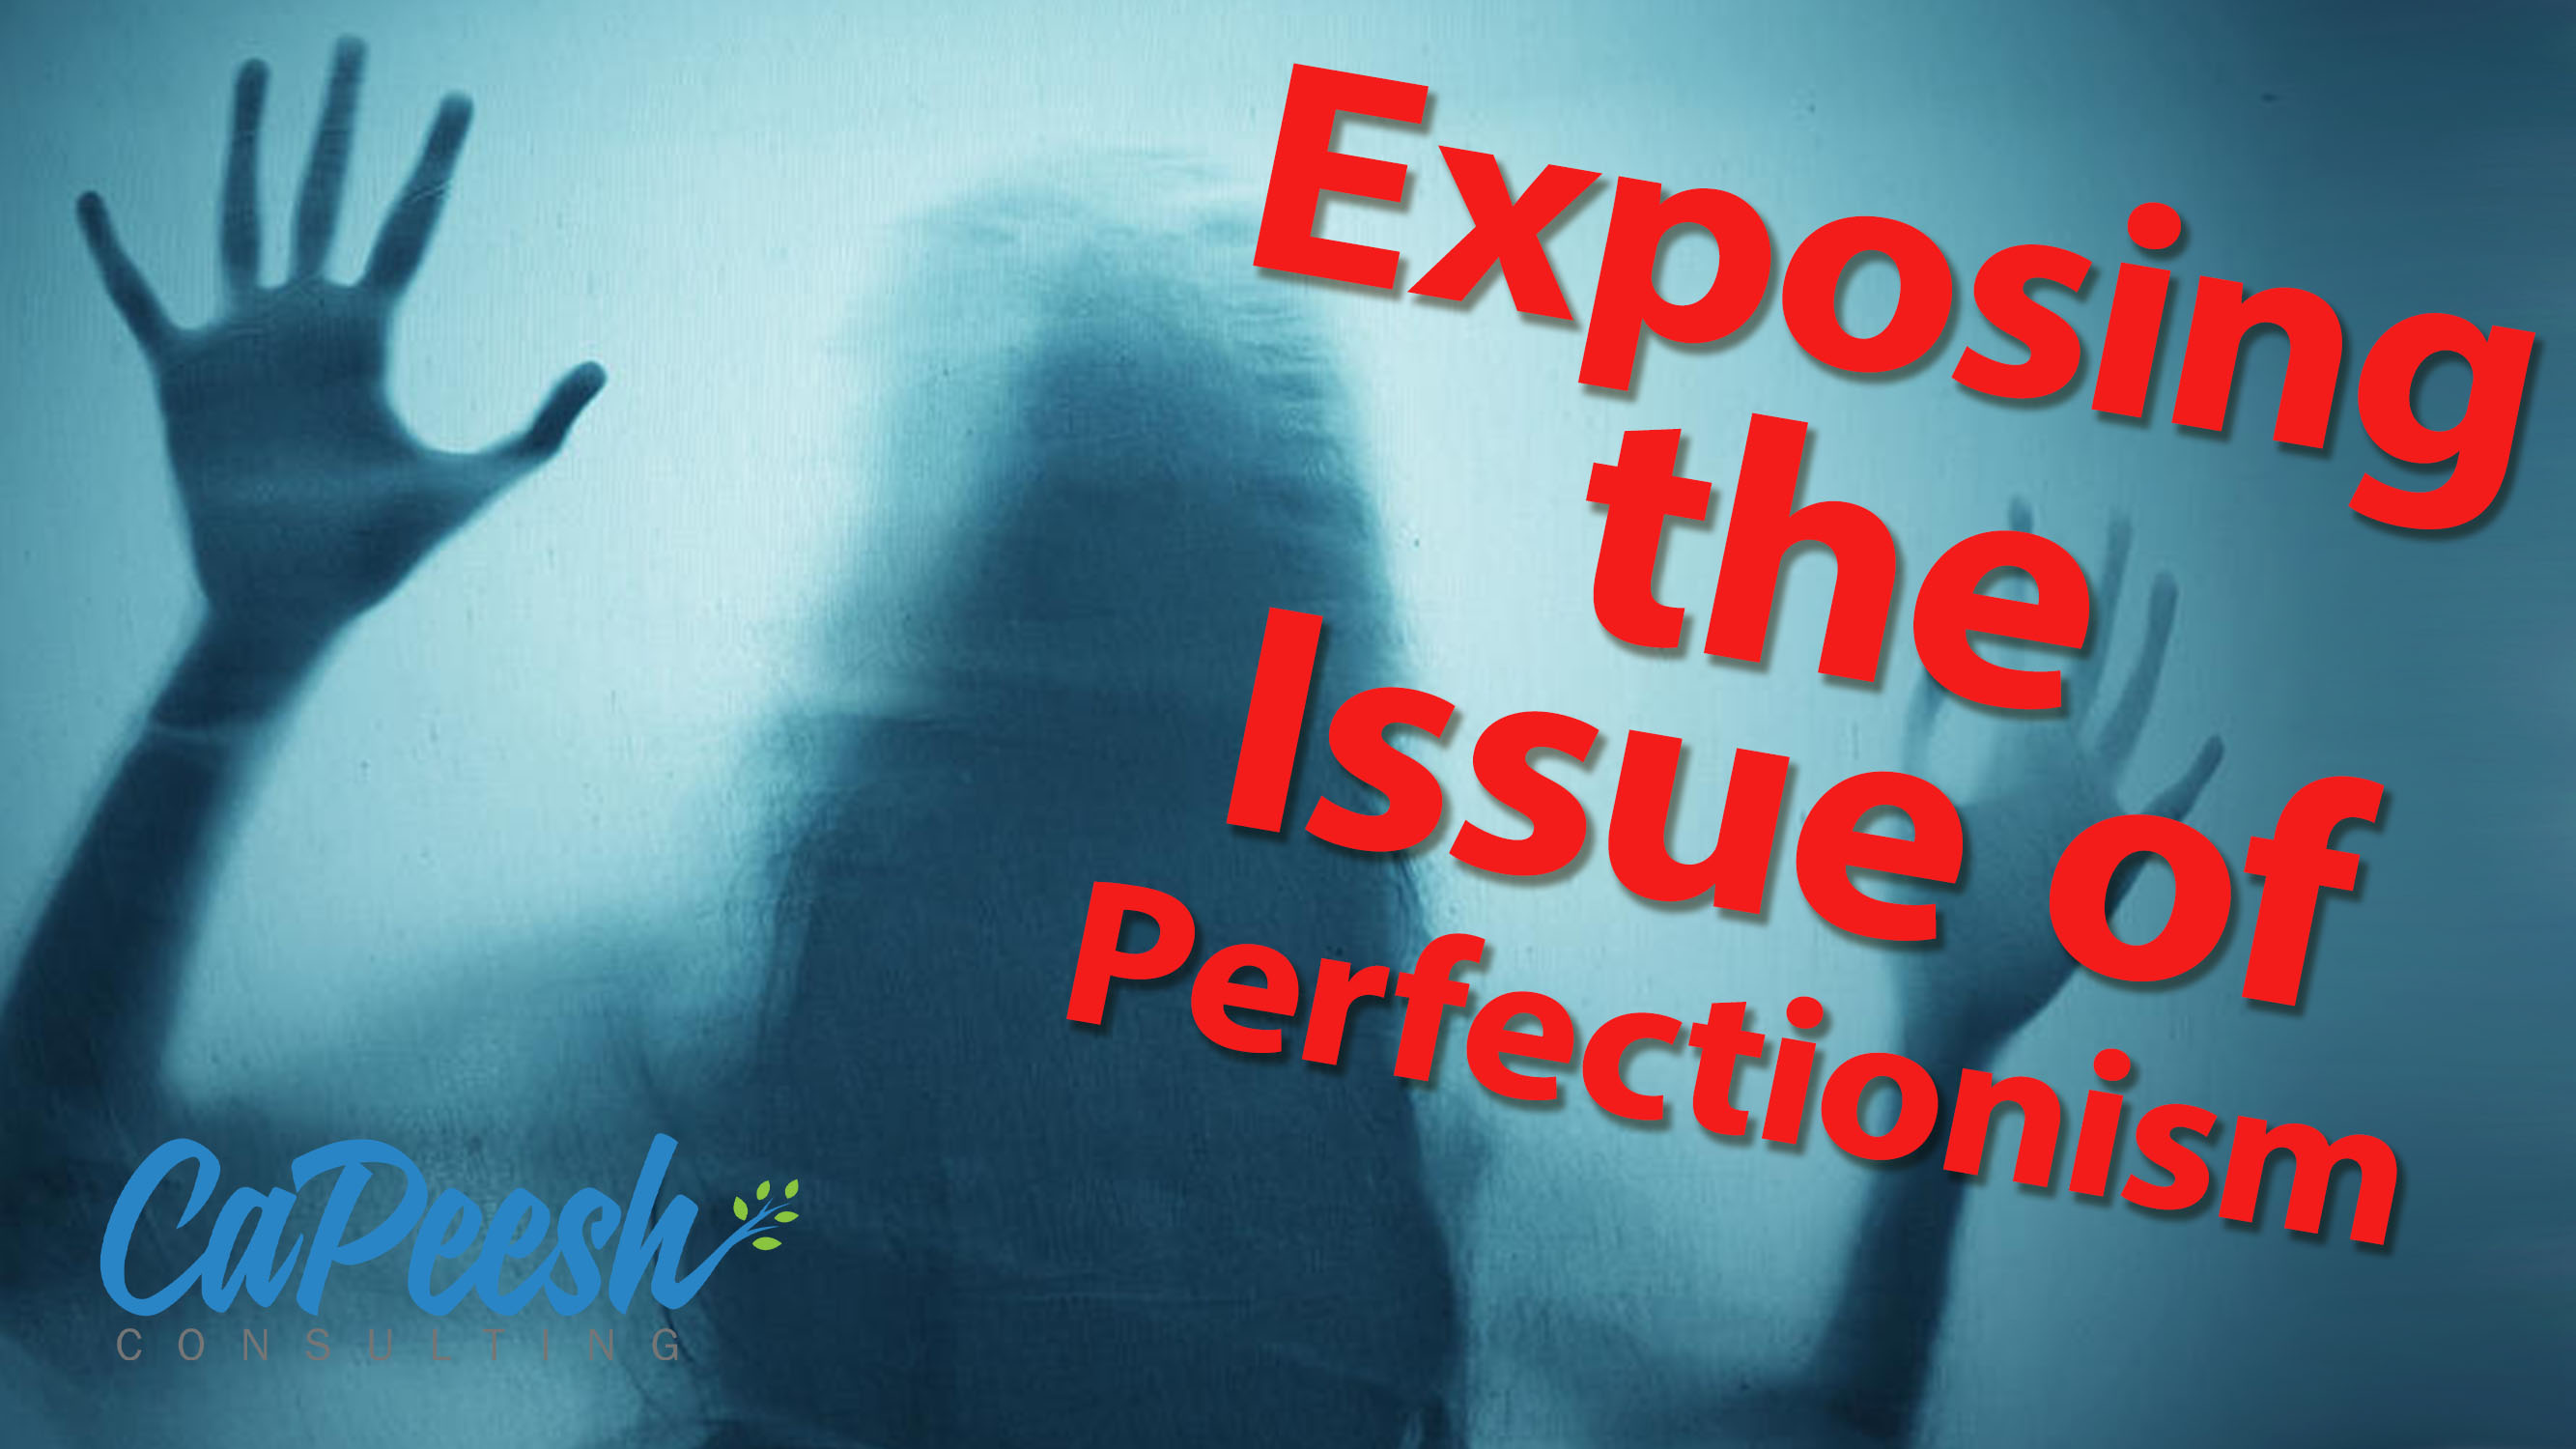 Q: How Do You Shift Your Perspective on Perfectionism?